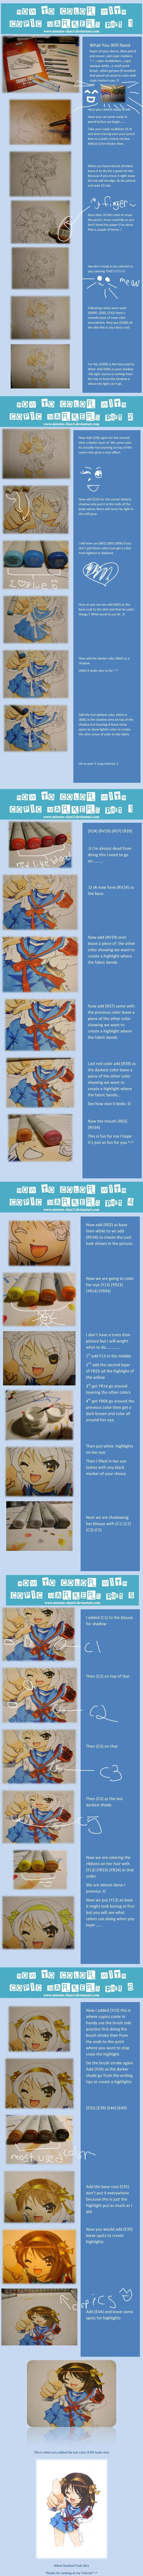 howto color with copic markers by miemie-chan3 on DeviantArt  #Color #copic #DeviantArt #HowTo #Markers #miemiechan3